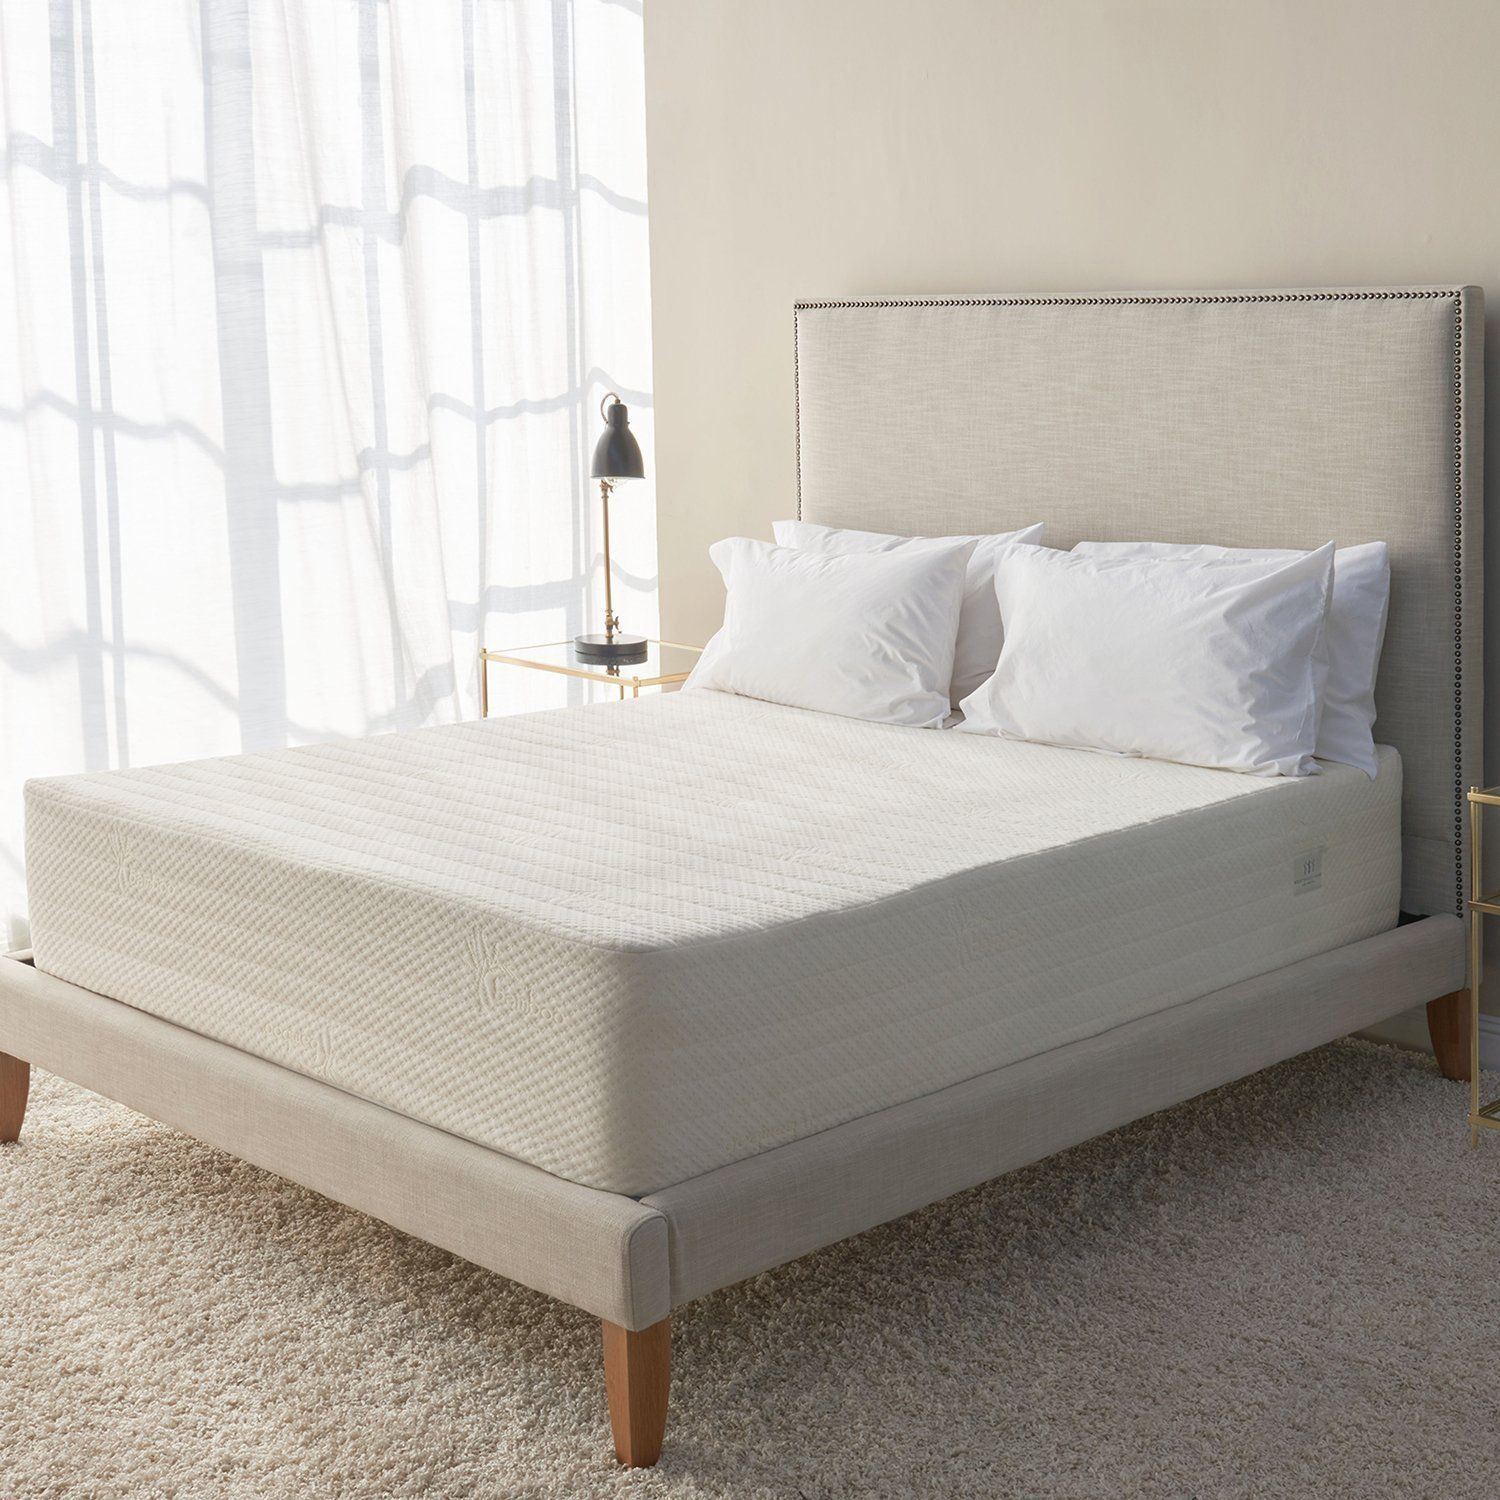 home review worth nursery choose a your toxic girl mattress to non how for brentwood